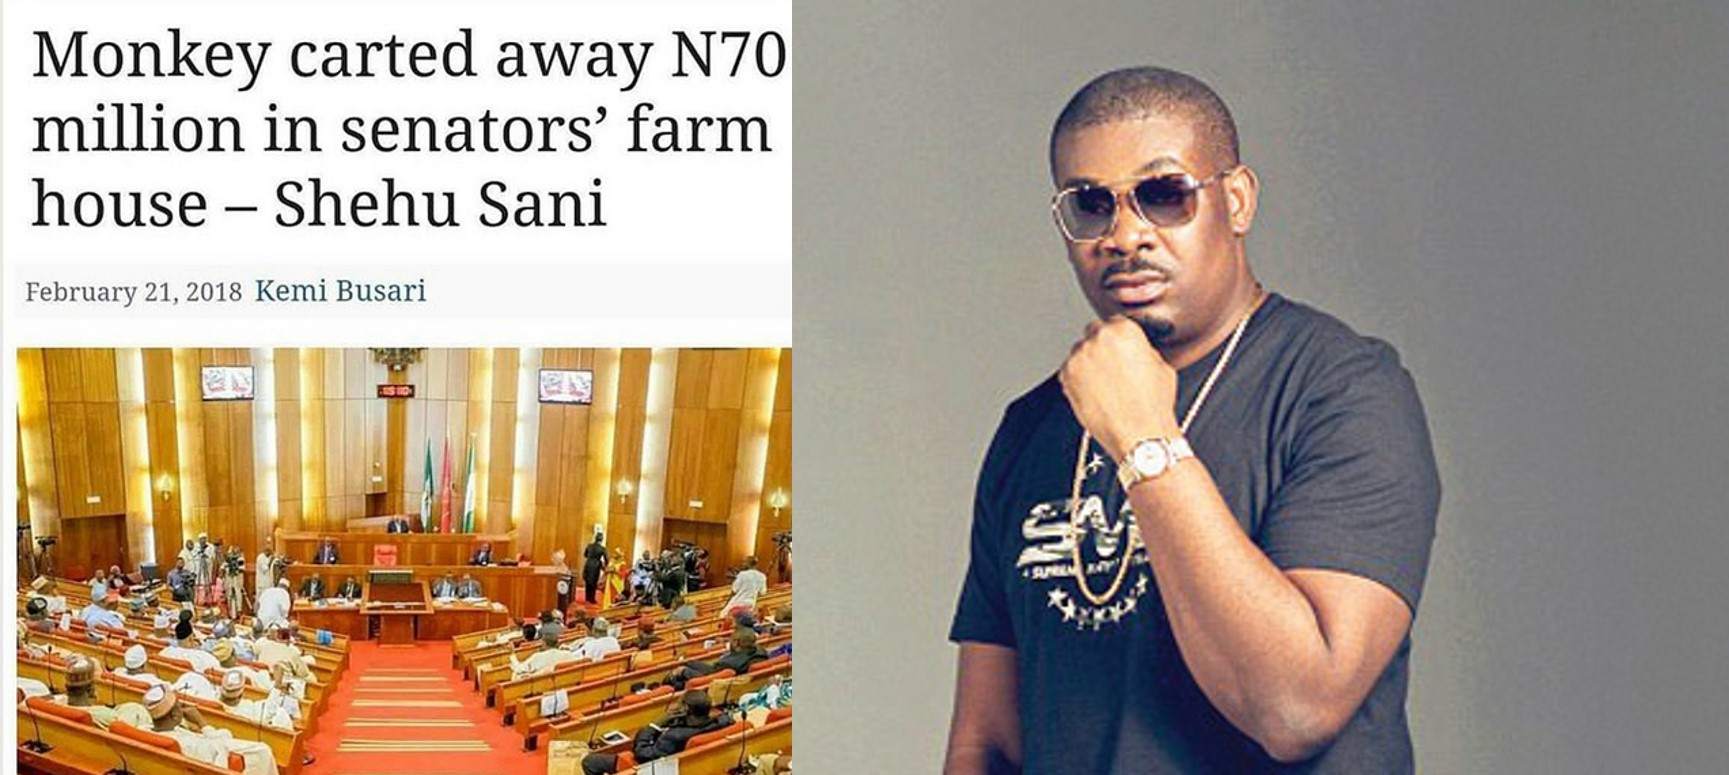 'Snake and the monkey shadow' – Don Jazzy's Reacts to reports of monkeys carting away N70 Million